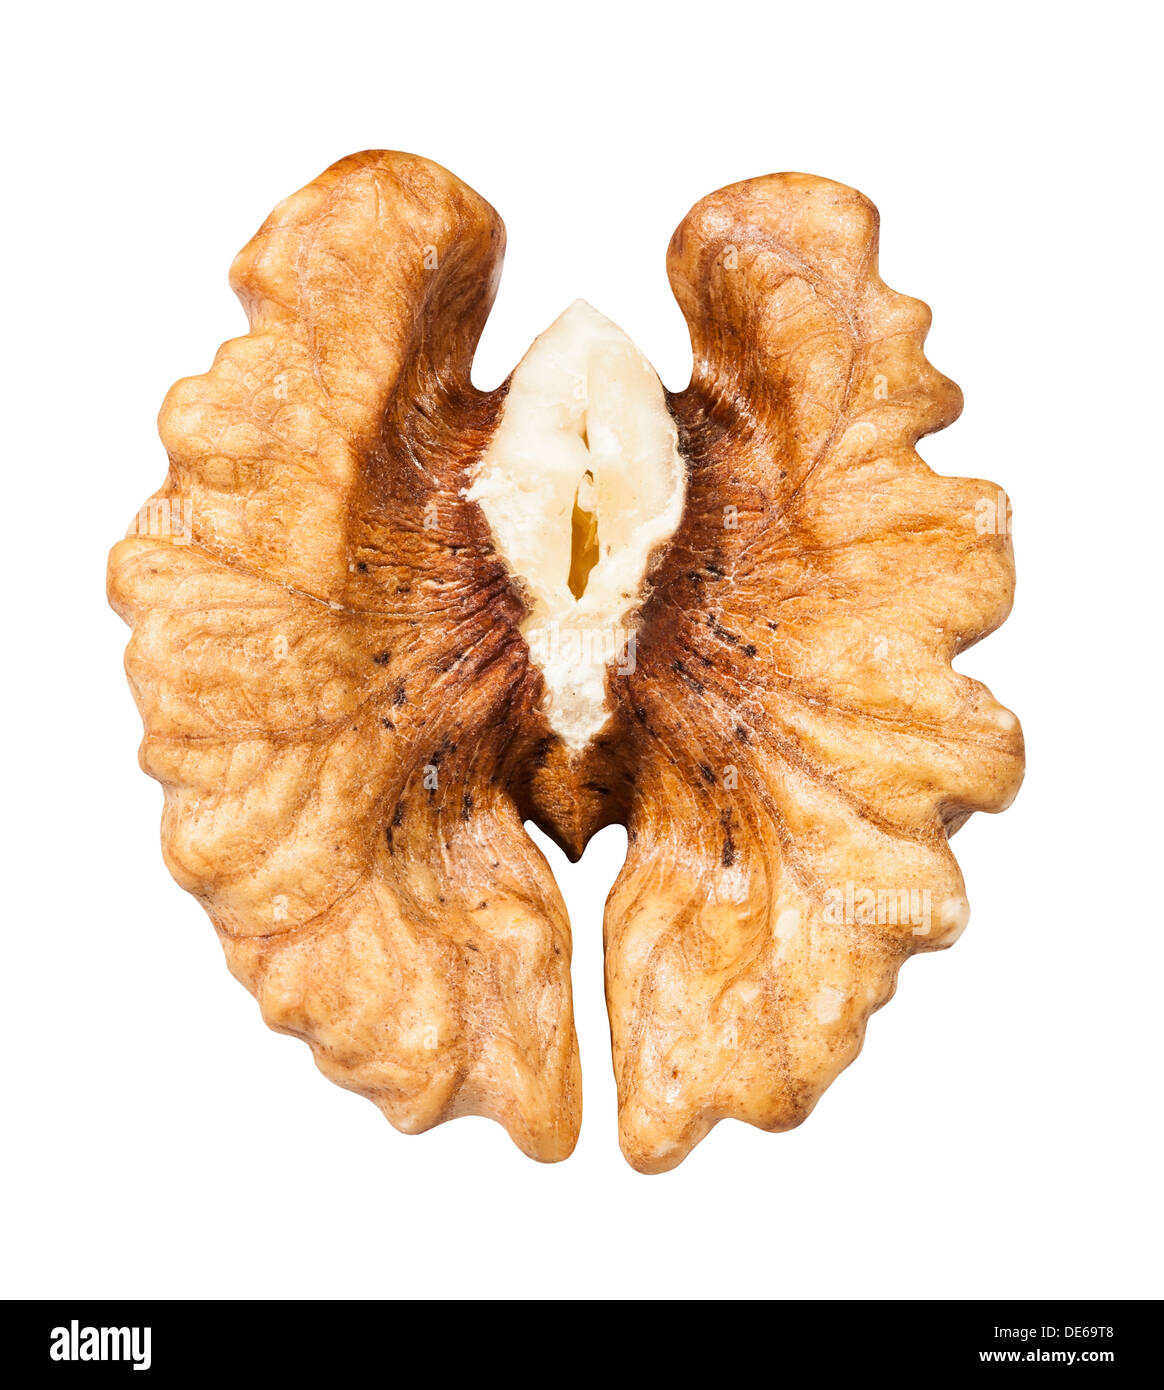 walnut one half on white background - Stock Image